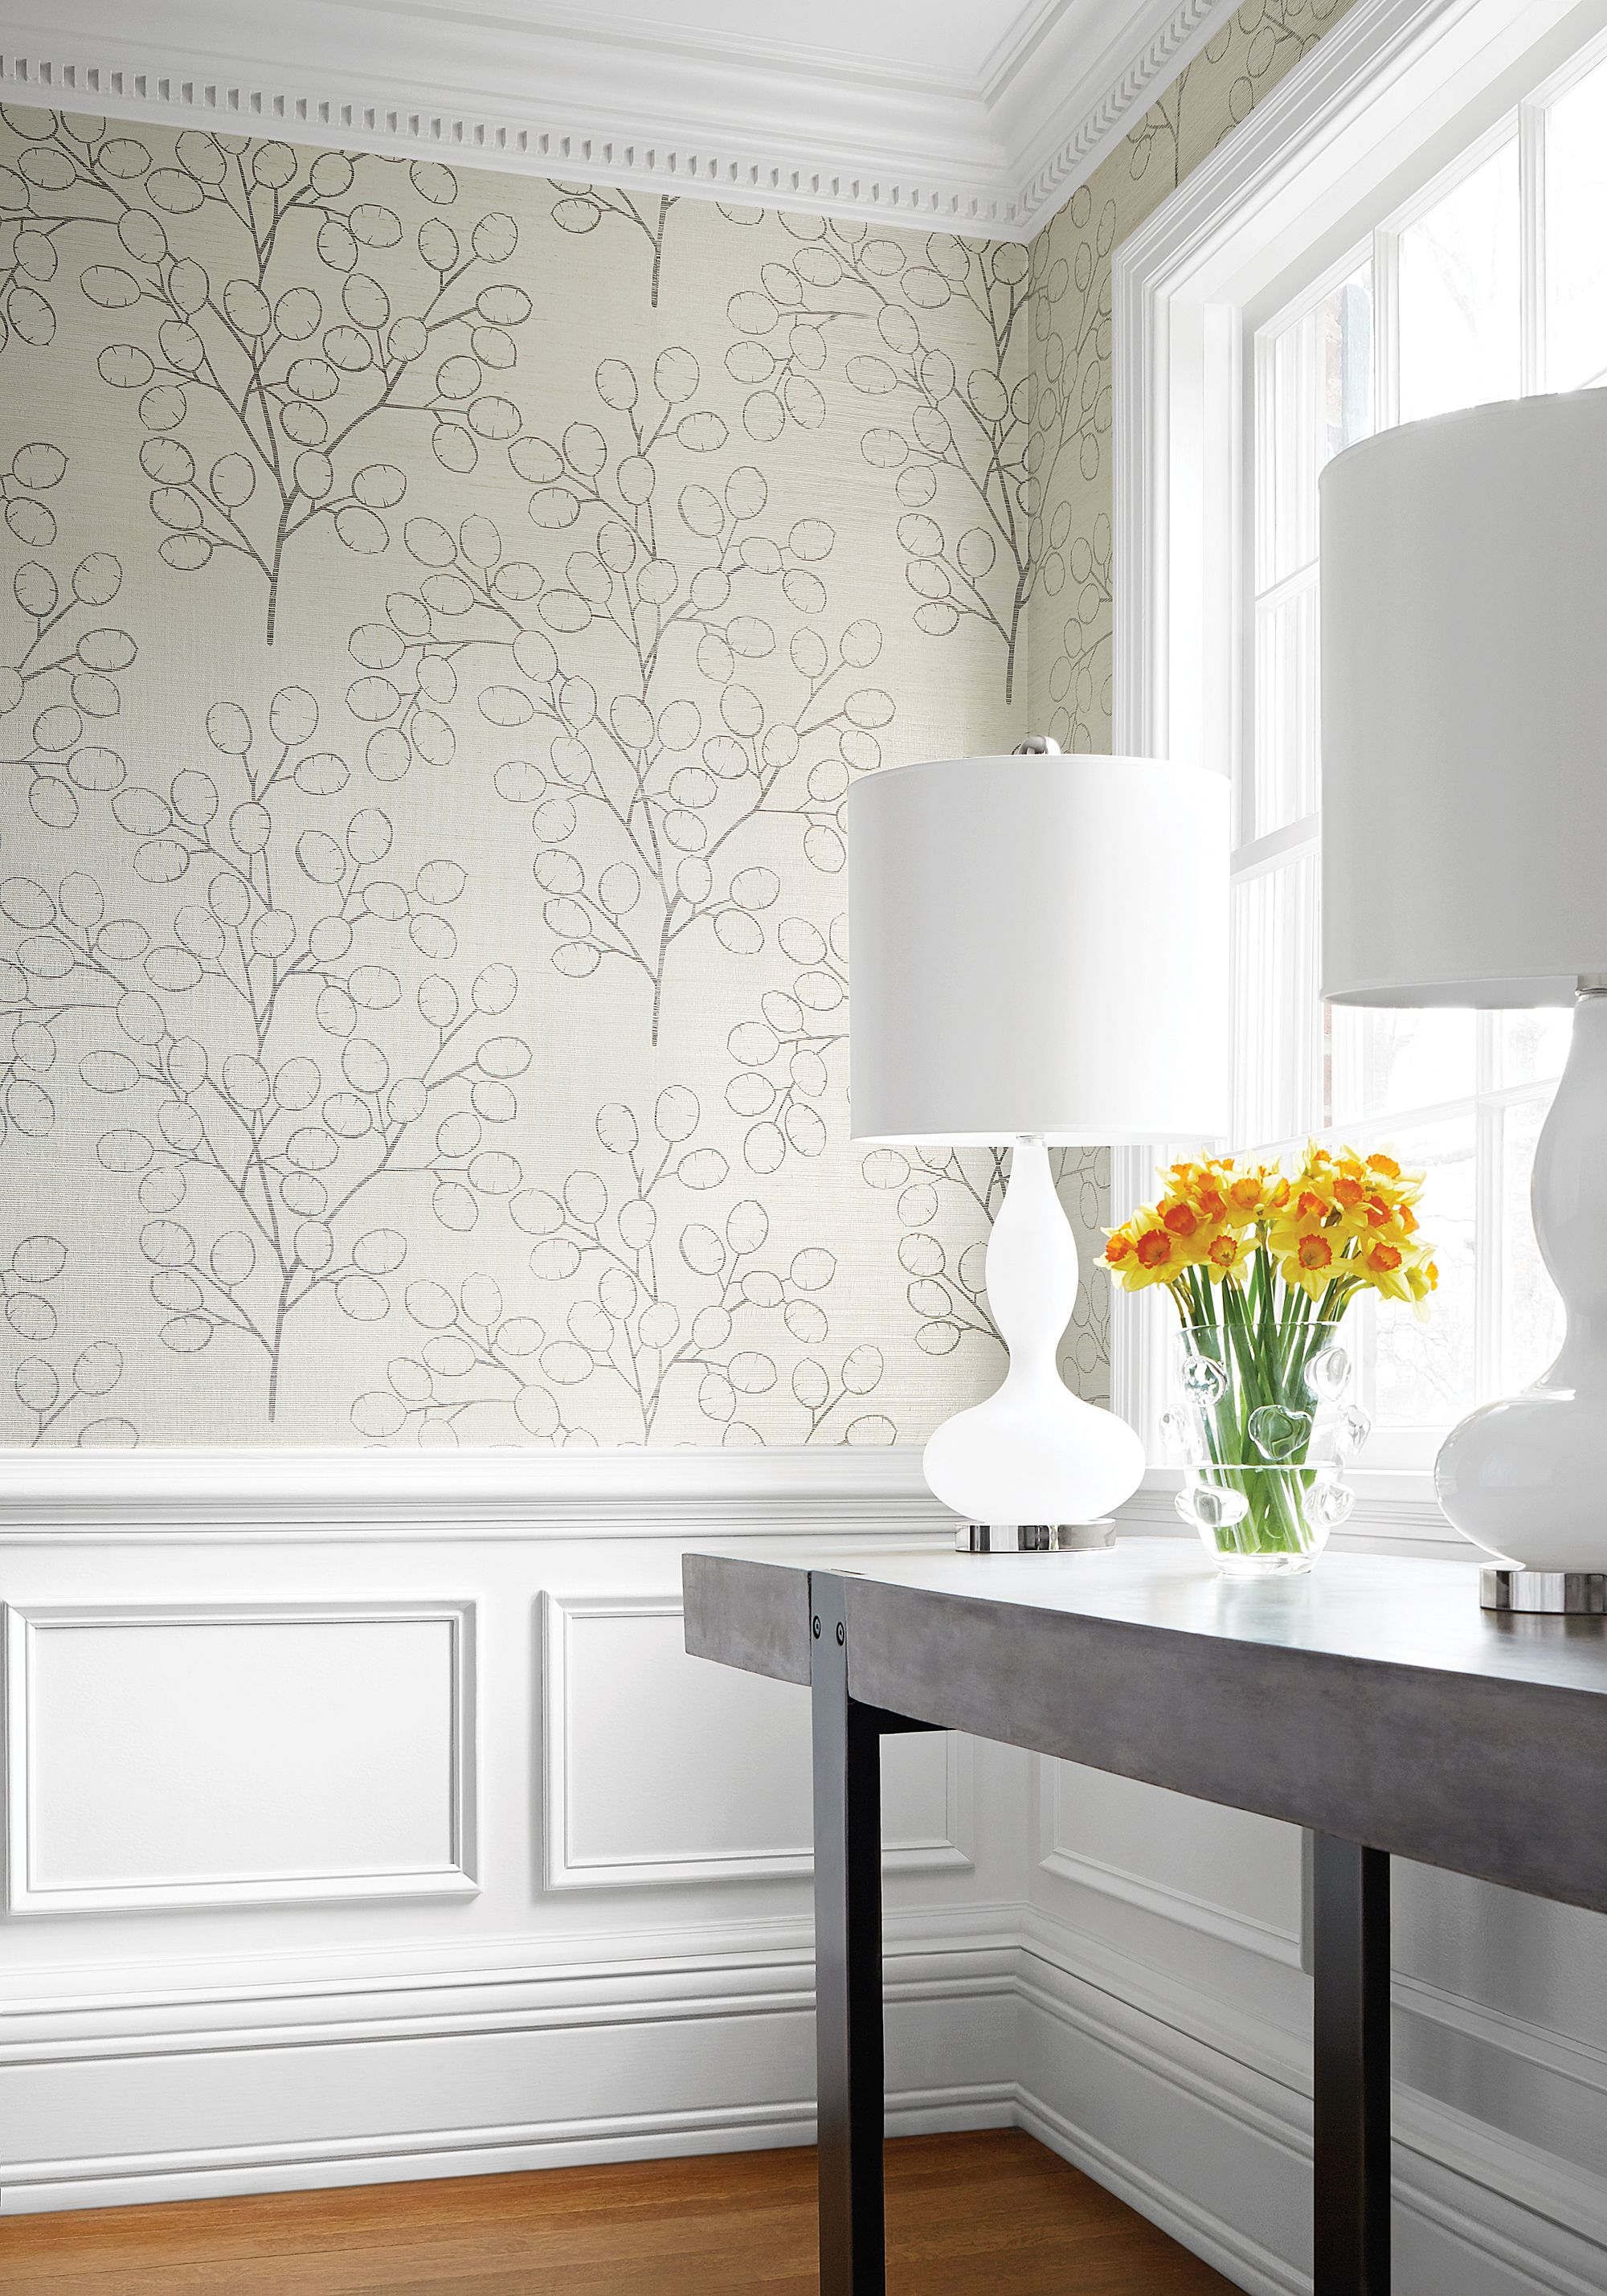 Tree Design Wallpaper Living Room: Money Tree From Natural Resource 2 Collection